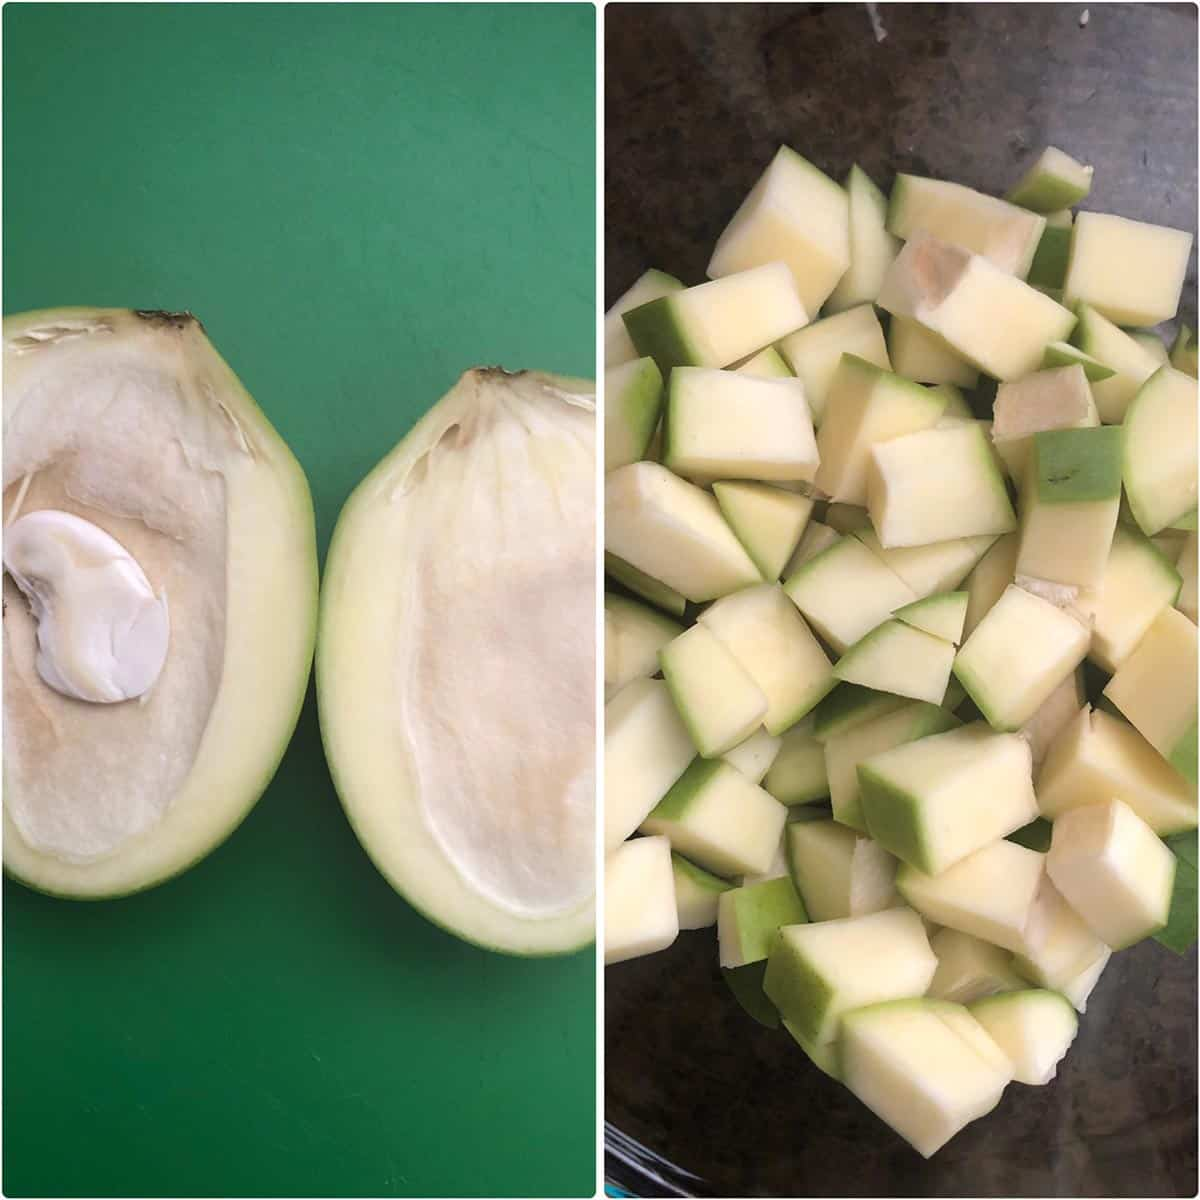 Side by side photos showing halved green mango and diced mango